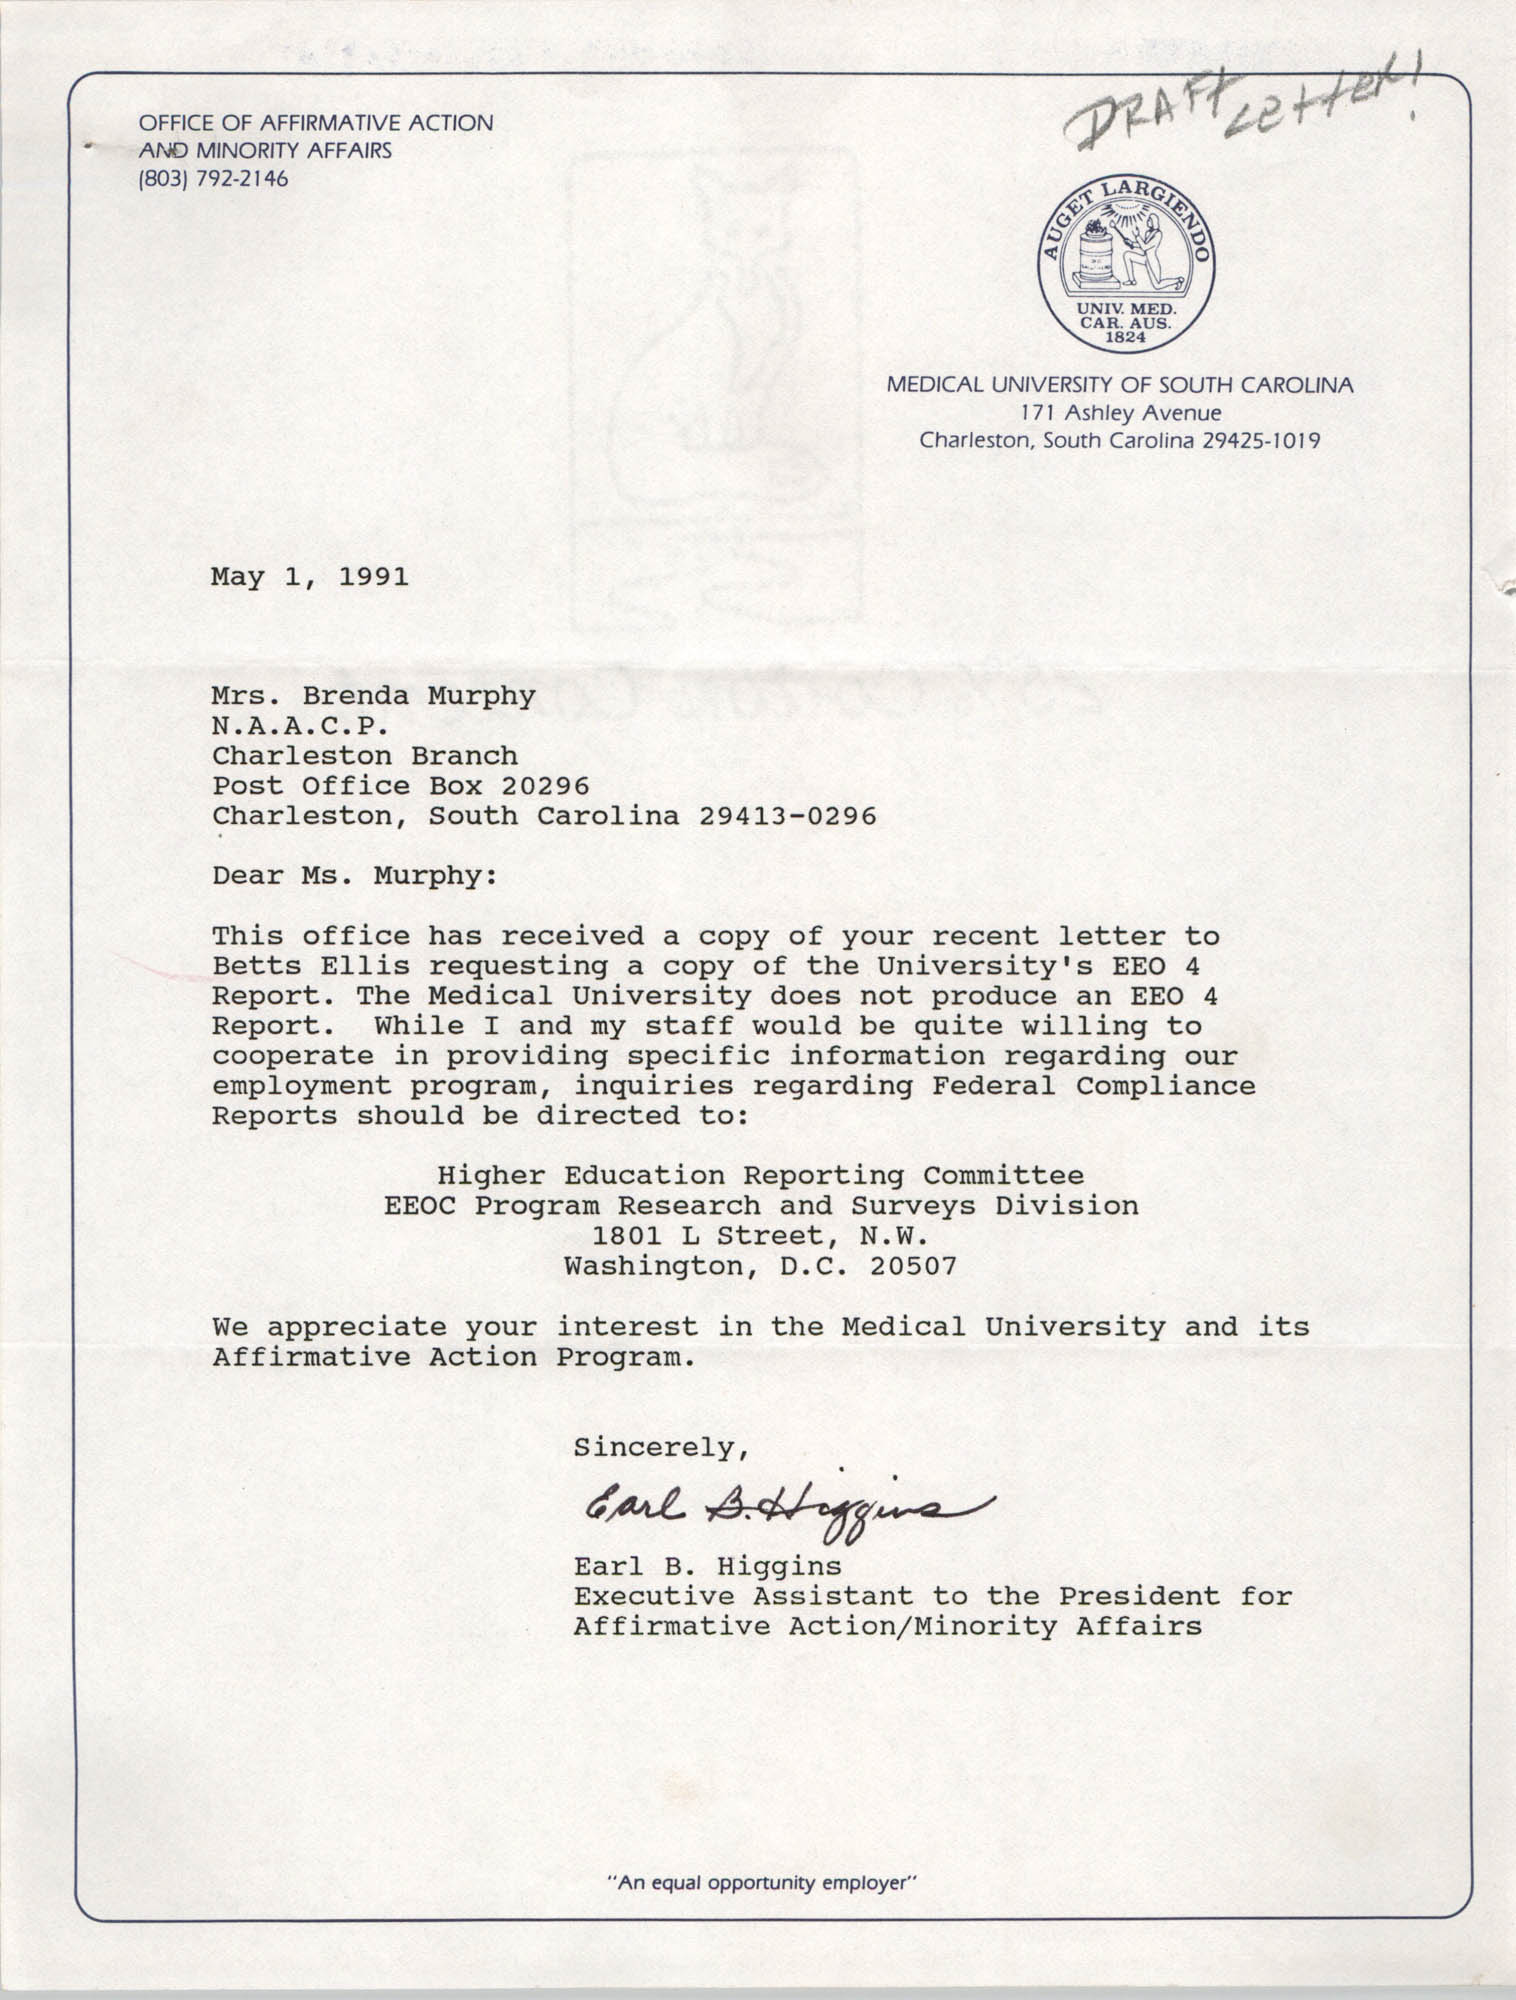 Letter from Earl B. Higgins to Brenda Murphy, May 1, 1991